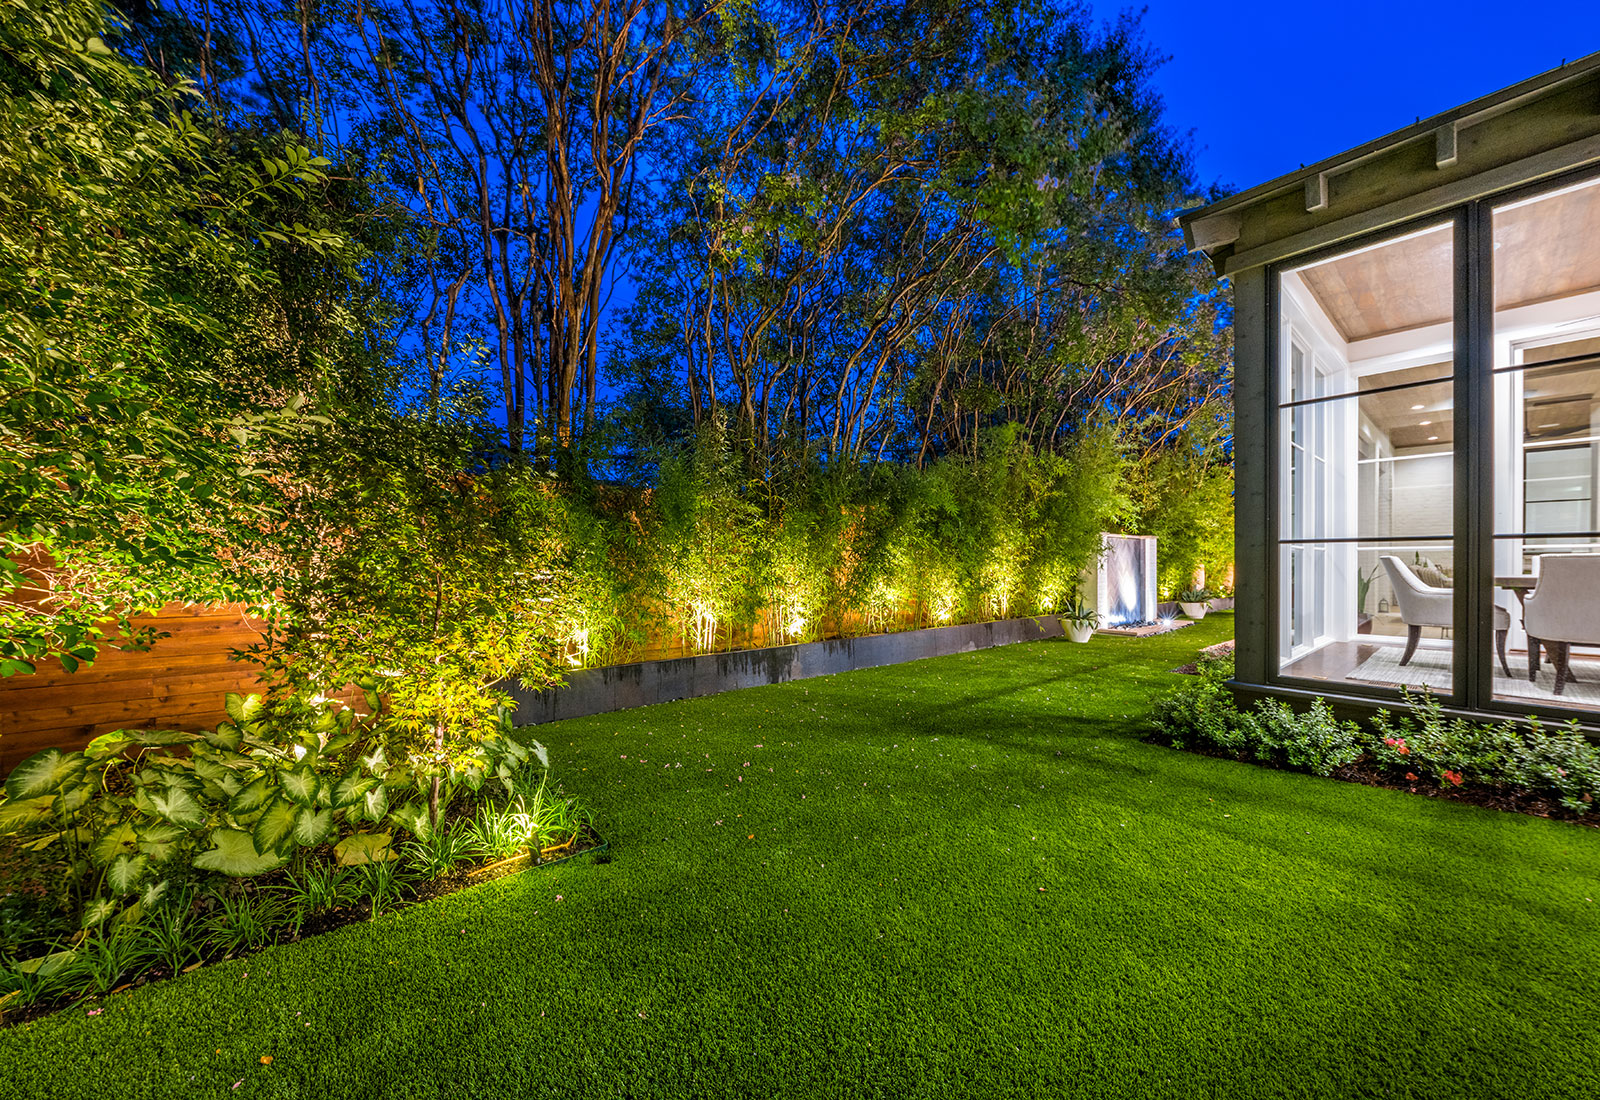 ddla-design-pemberton-modern-rear-lawn-evening2.jpg